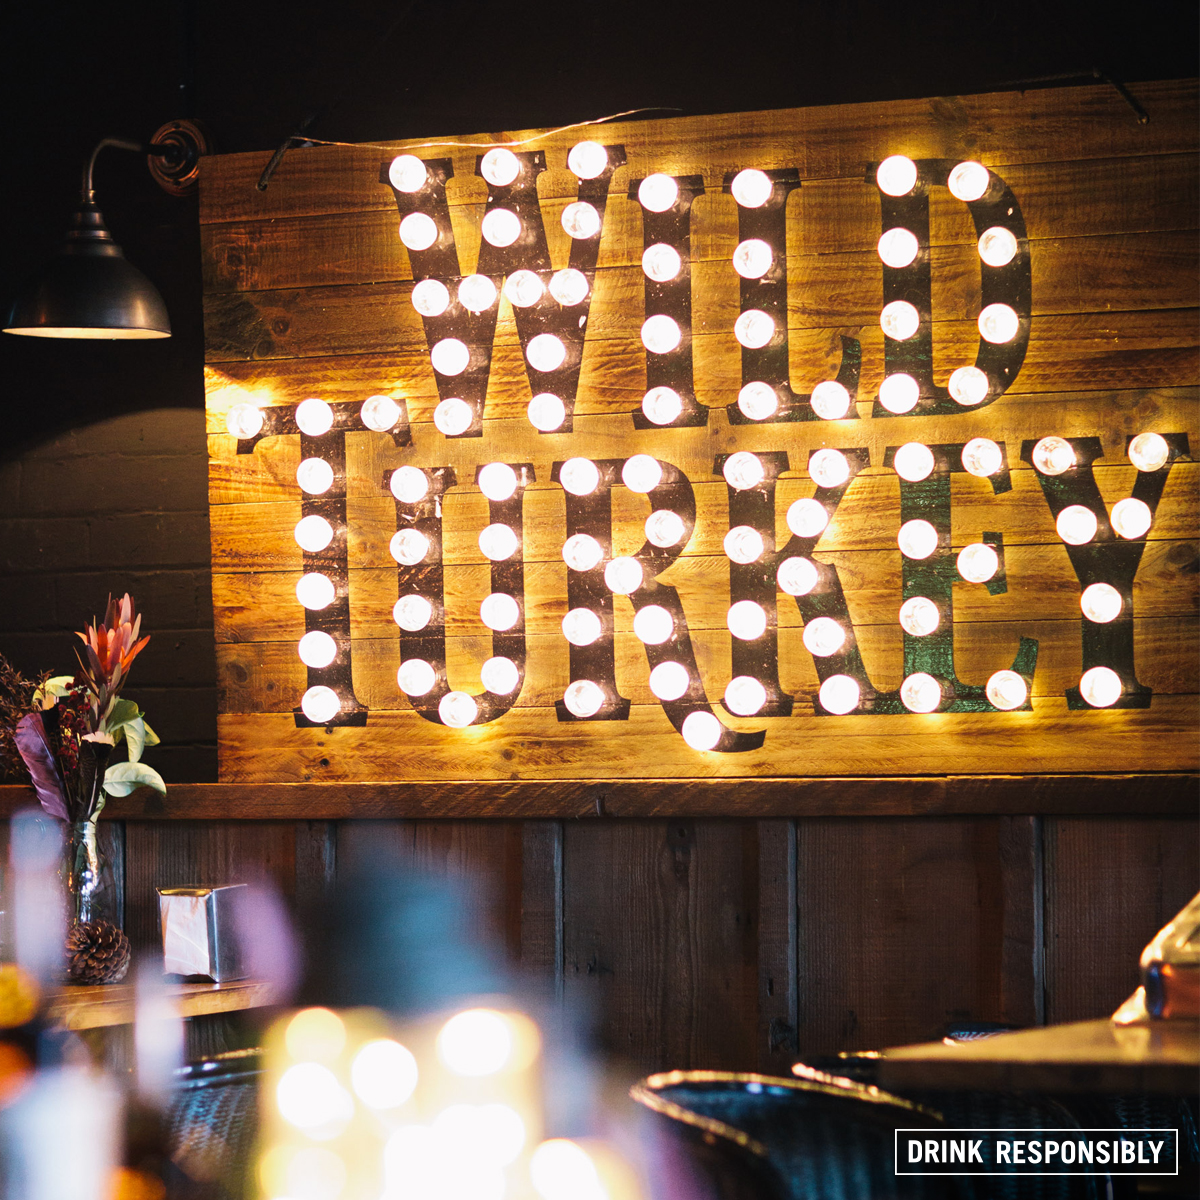 EXPERIENCE.. - …the Spirit of the Wild at The Queensberry this August with Wild Turkey's Winter Outdoor Pop-up from 1 August to 1 September.Step into our heated winter beer garden haven and enter a secluded campfire wilderness with fire pits, cosy blankets, cushions and festoon lighting.